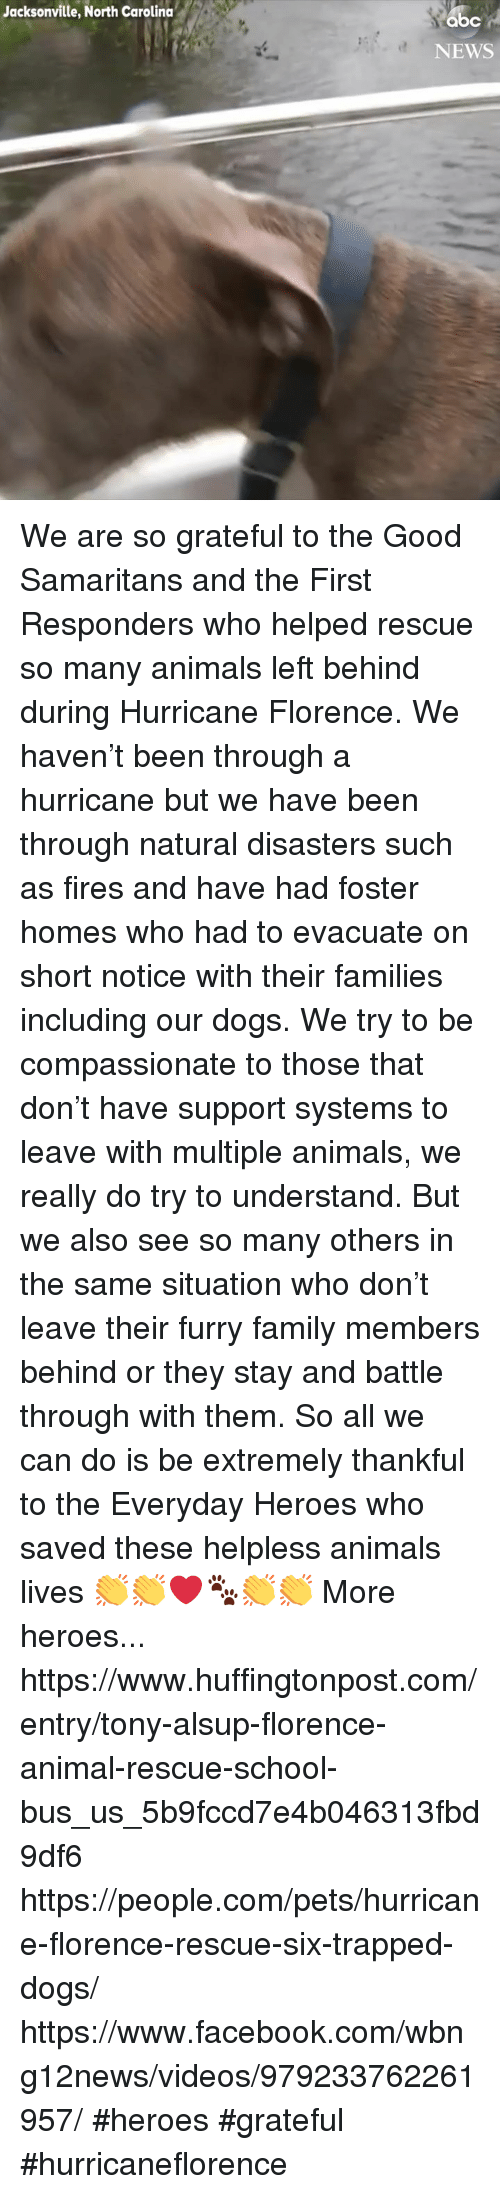 Animals, Dogs, and Facebook: Jacksonville, North Carolina  NEWS We are so grateful to the Good Samaritans and the First Responders who helped rescue so many animals left behind during Hurricane Florence.   We haven't been through a hurricane but we have been through natural disasters such as fires and have had foster homes who had to evacuate on short notice with their families including our dogs.   We try to be compassionate to those that don't have support systems to leave with multiple animals, we really do try to understand. But we also see so many others in the same situation who don't leave their furry family members behind or they stay and battle through with them.   So all we can do is be extremely thankful to the Everyday Heroes who saved these helpless animals lives 👏👏❤️🐾👏👏  More heroes... https://www.huffingtonpost.com/entry/tony-alsup-florence-animal-rescue-school-bus_us_5b9fccd7e4b046313fbd9df6  https://people.com/pets/hurricane-florence-rescue-six-trapped-dogs/  https://www.facebook.com/wbng12news/videos/979233762261957/  #heroes #grateful #hurricaneflorence